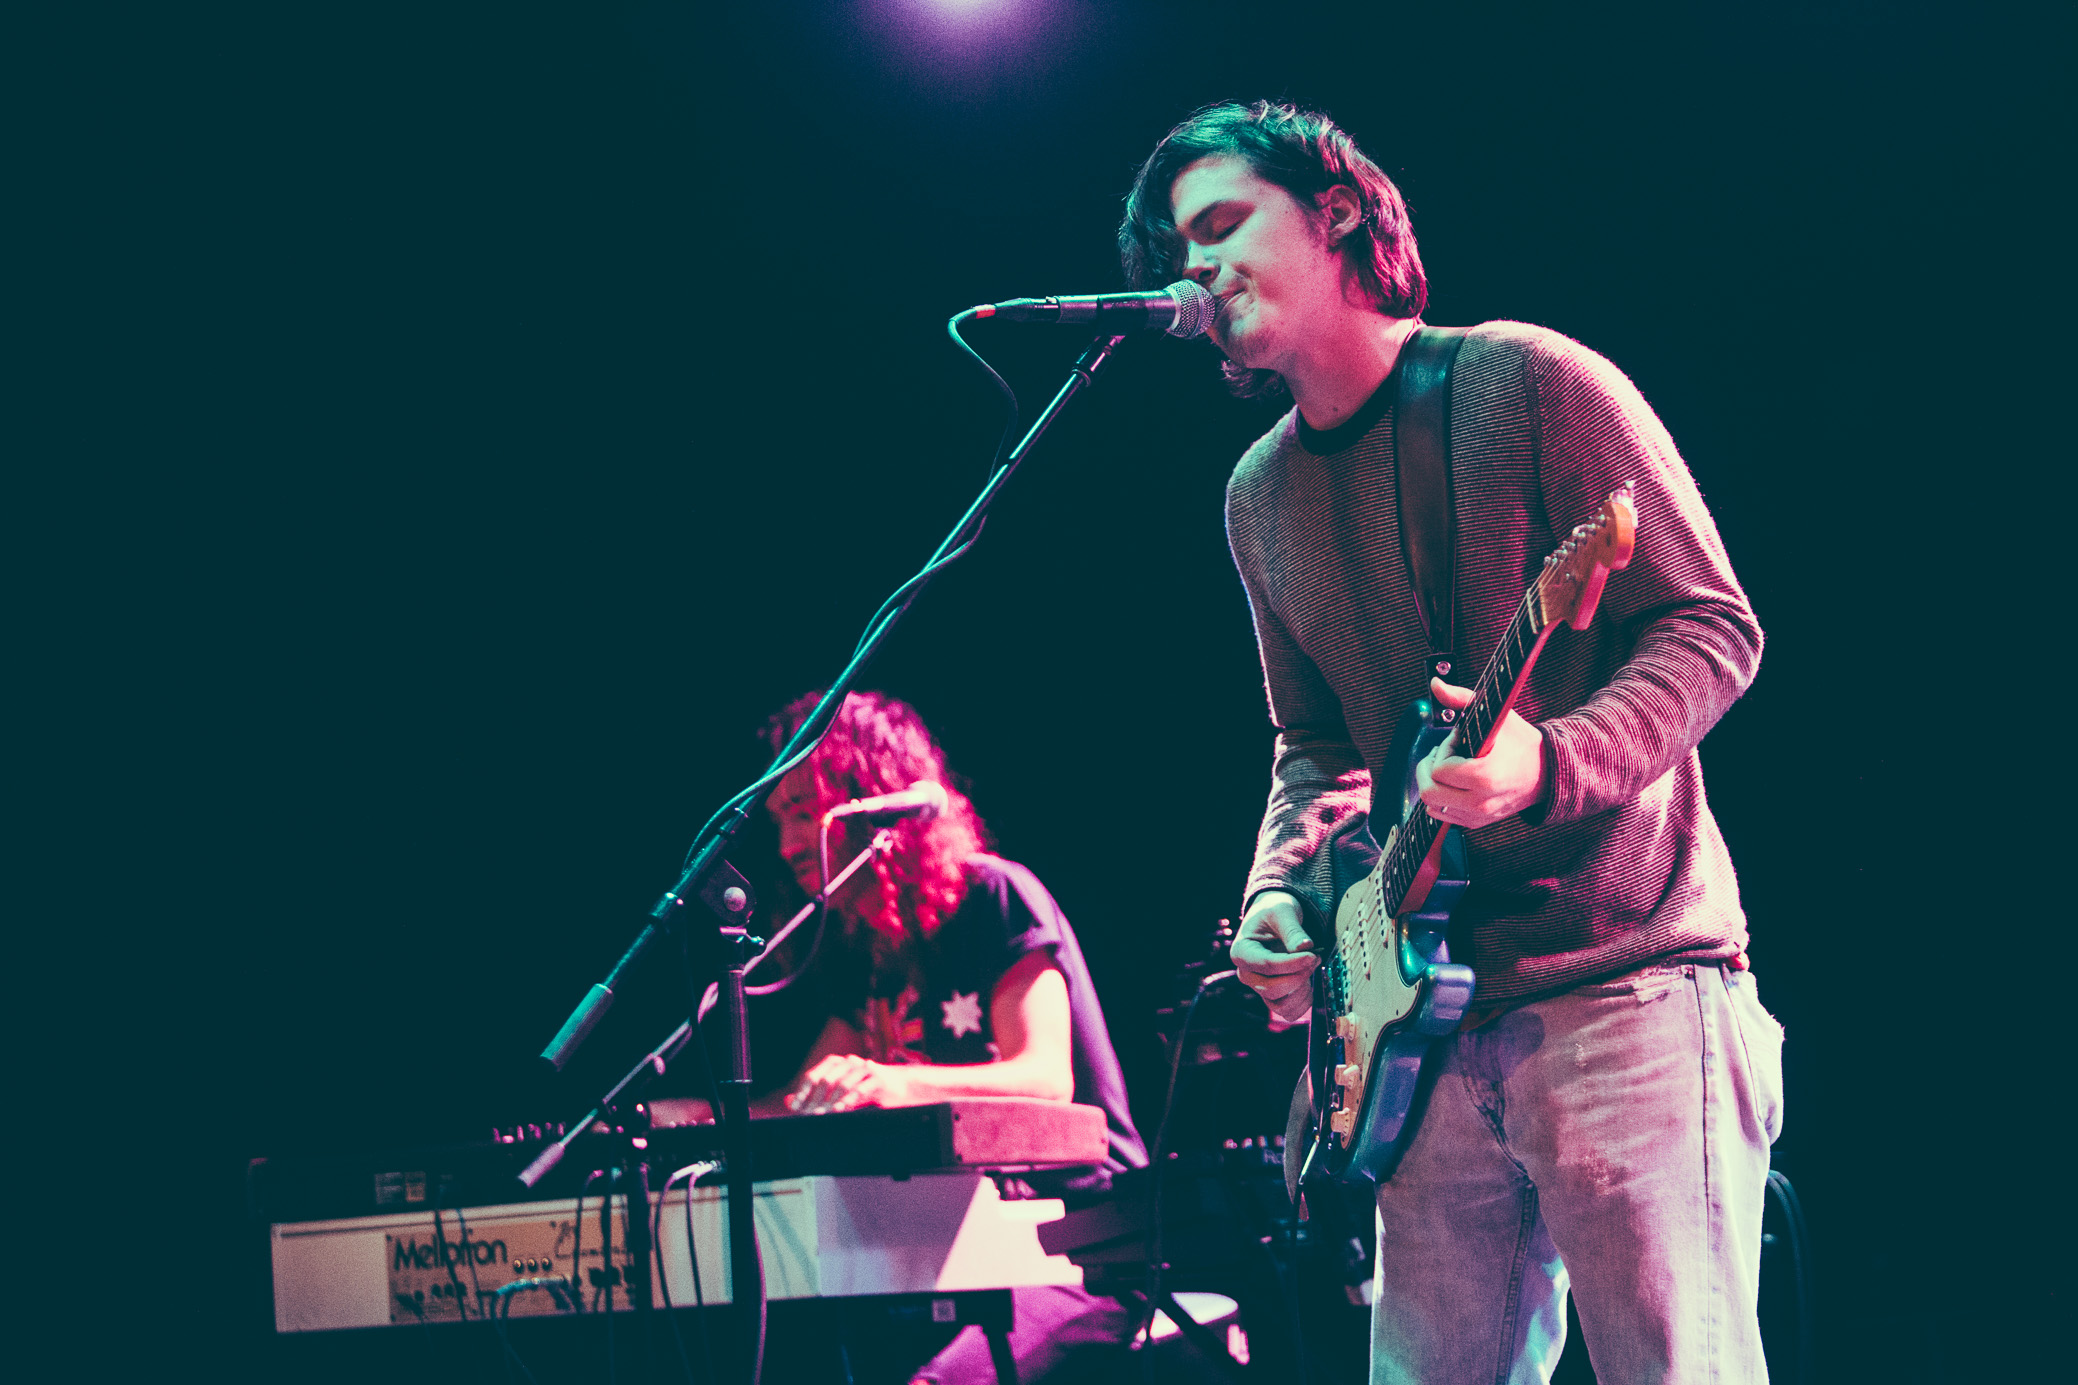 The Prescriptions perform in concert at Saturn Birmingham in Birmingham, Alabama on February 7th, 2019. (Photo by David A. Smith / DSmithScenes)